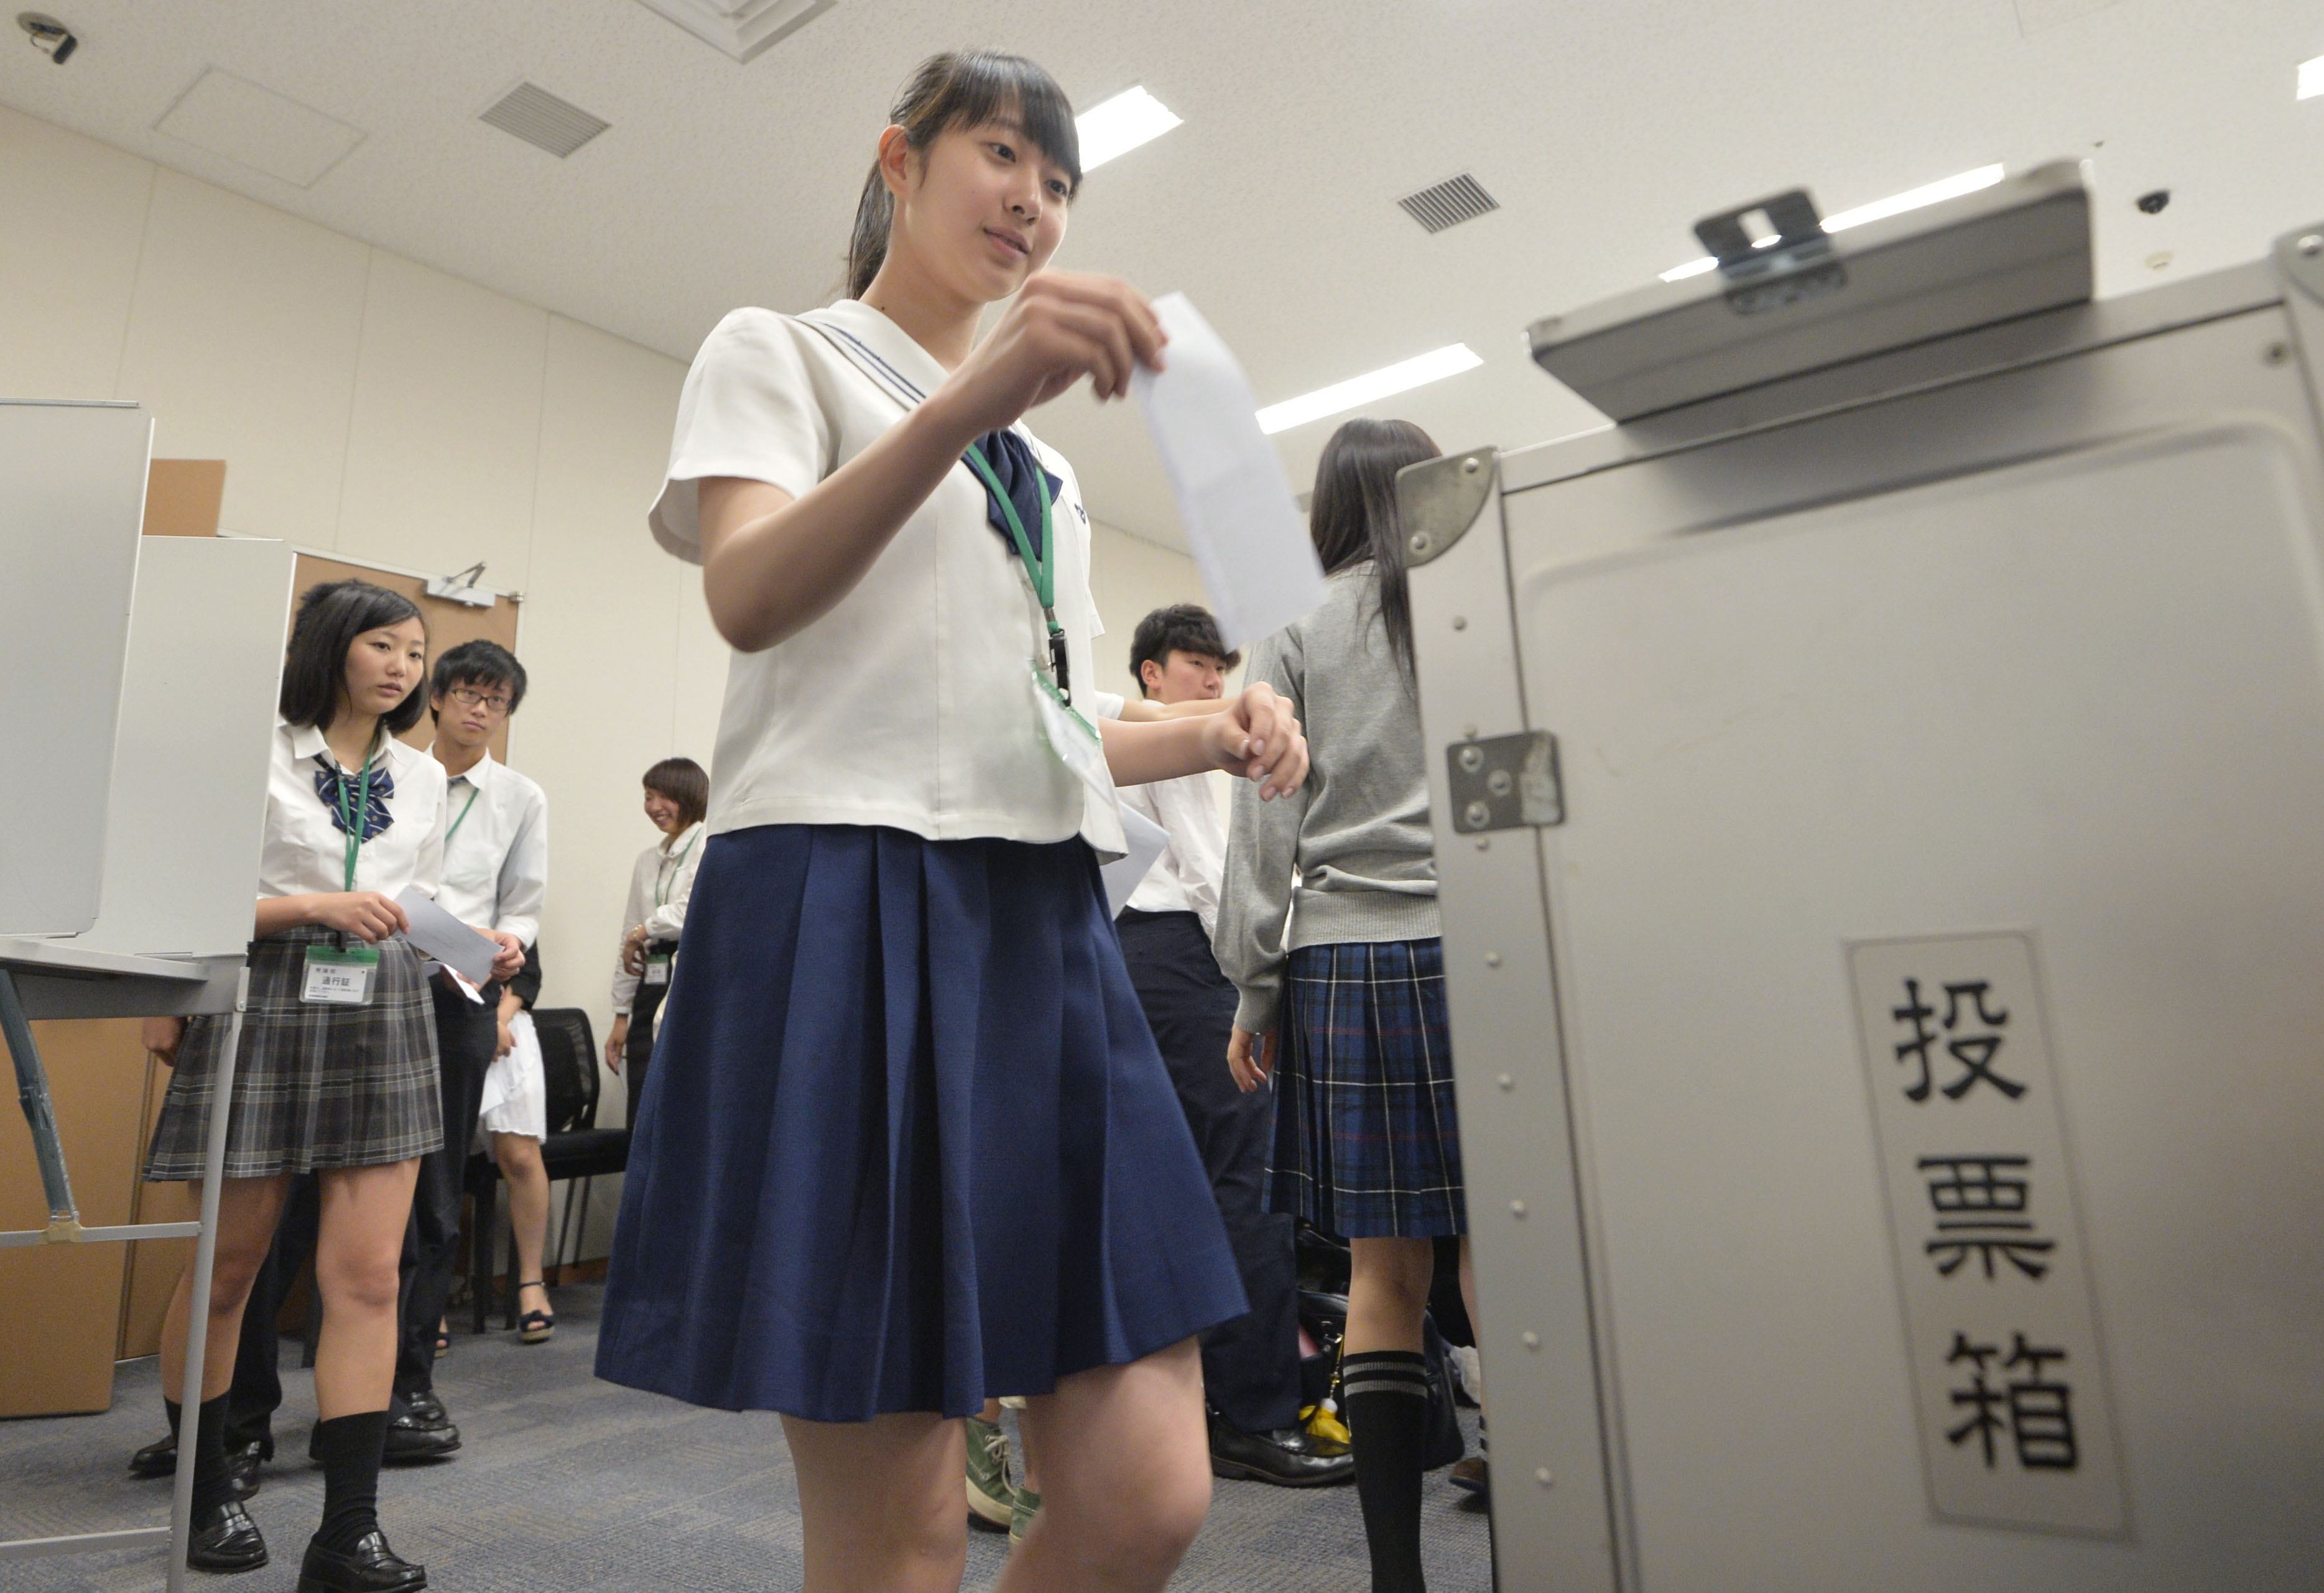 High school students cast their votes for a simulated national election at the parliament building in Tokyo on June 17, 2015.